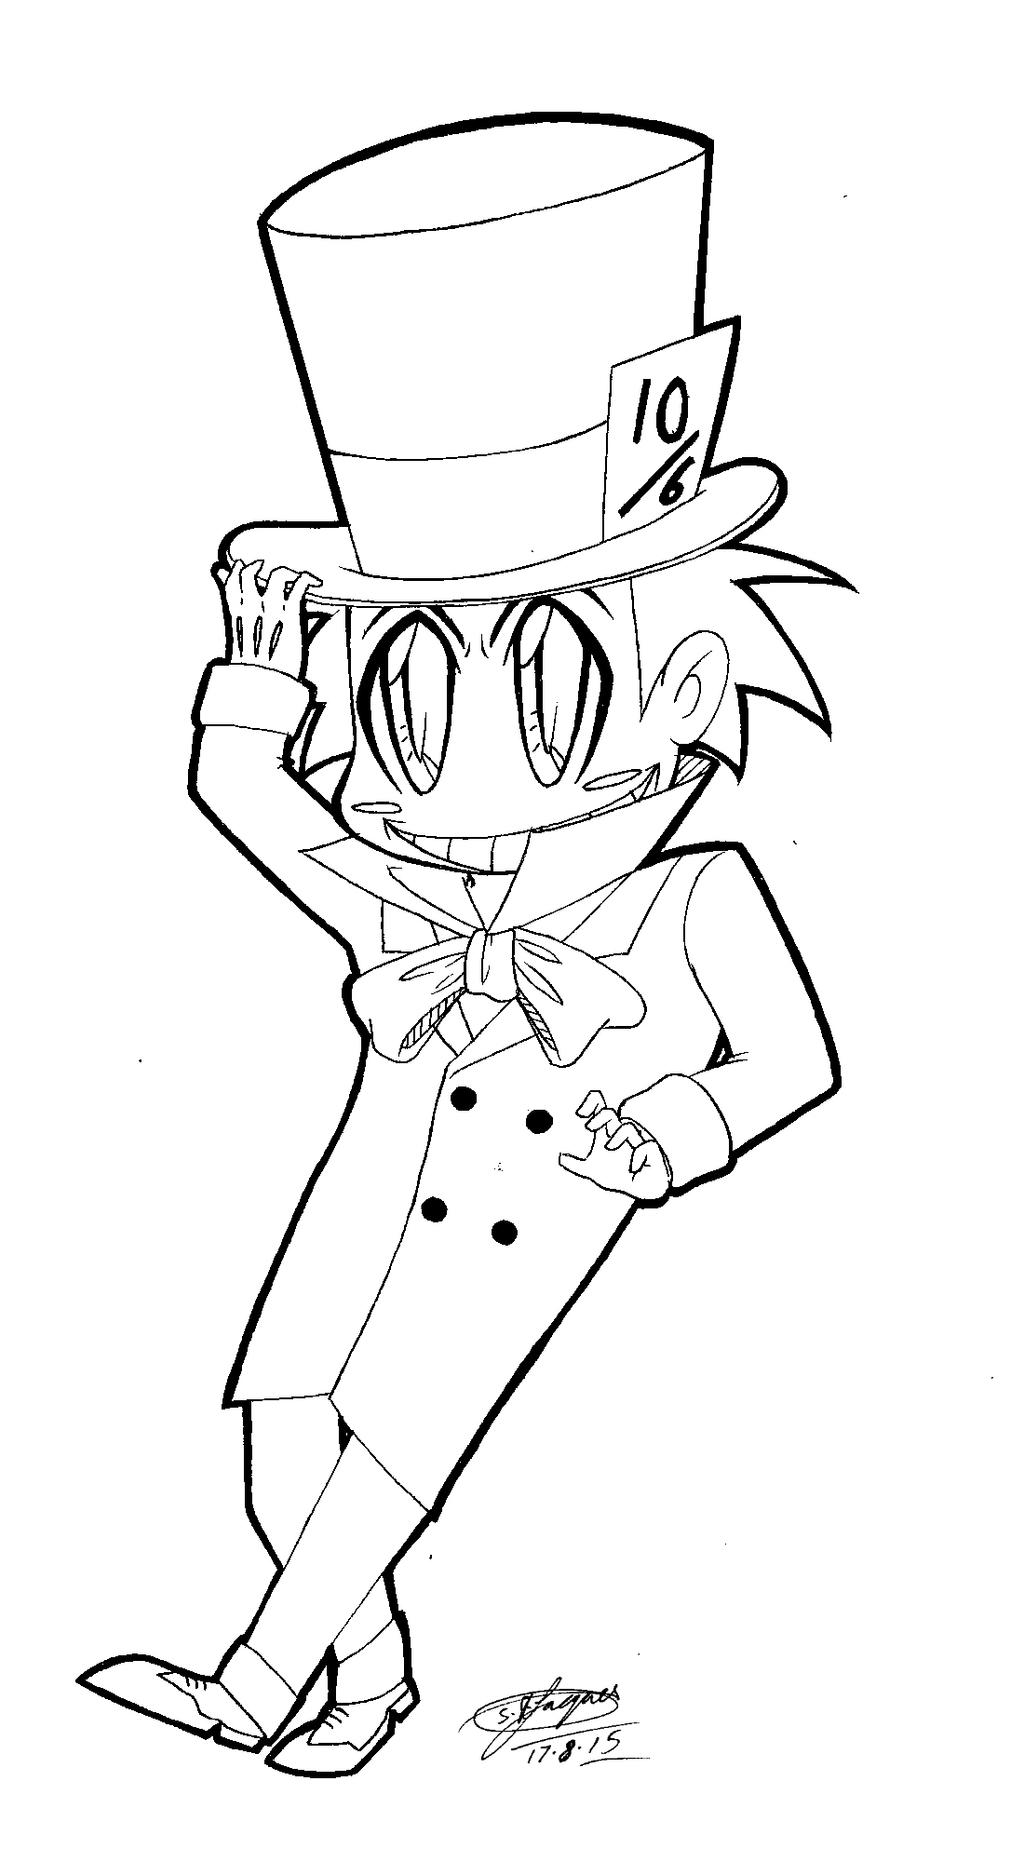 Topic 287669 Vos Avis Et Conseils Pour Plomberie Sanitaires also Rabbitmon 1 171441334 also Topic 214747 additionally Random UTAU Chibis 278124400 further Chibi Batman Mad Hatter Lineart 3 556616247. on img ru pose